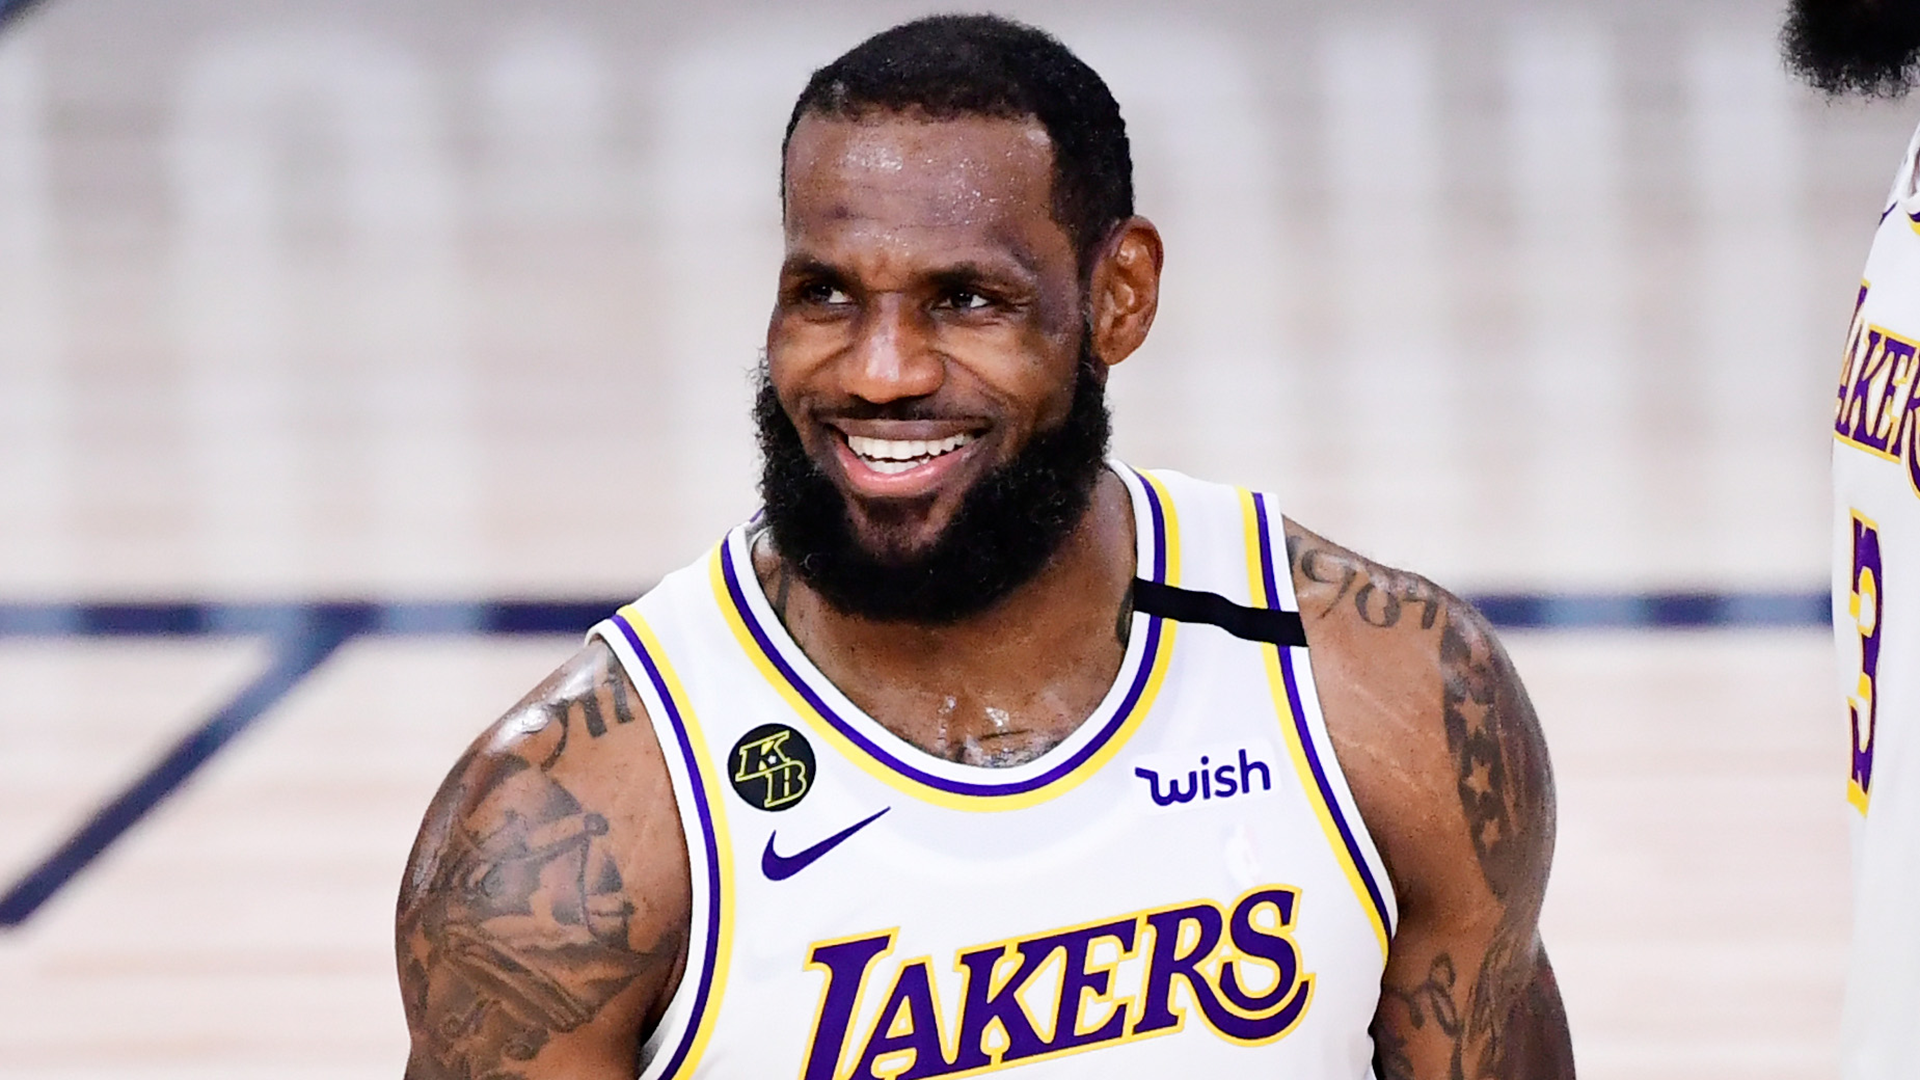 LeBron James has Kobe-esque game in Lakers win over Cavs